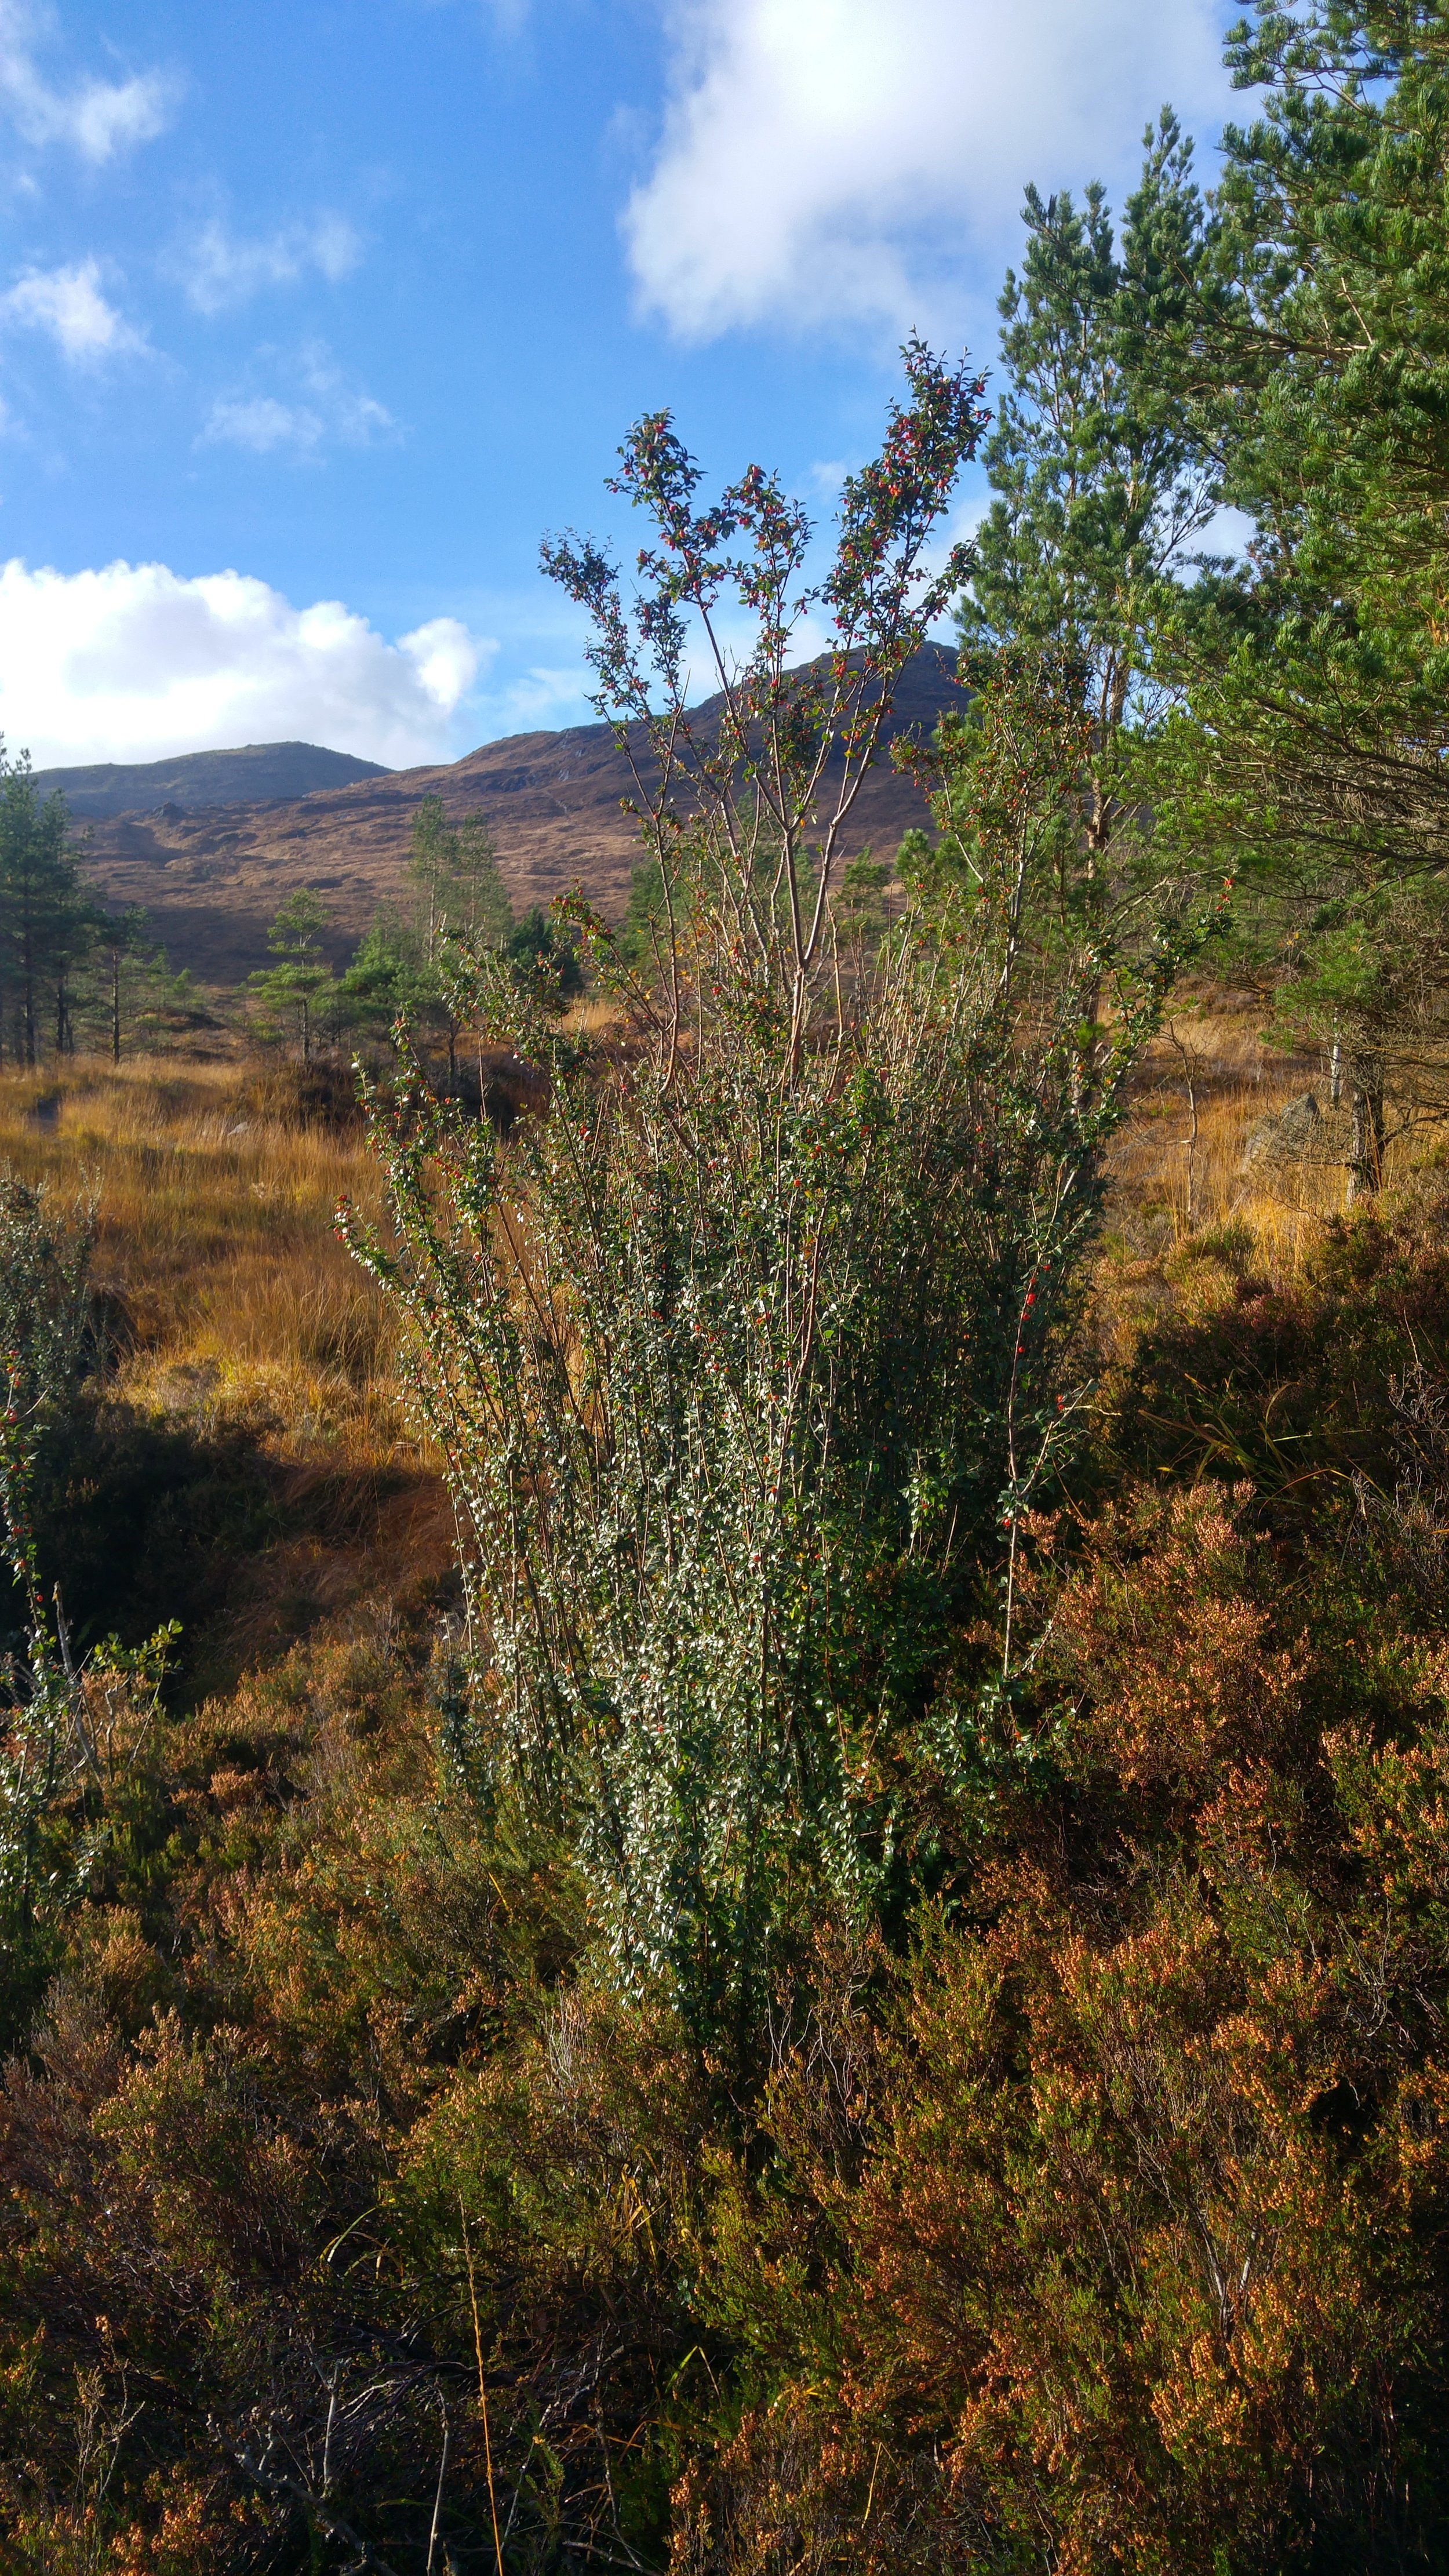 A picture of one of the target species: a mature cotoneaster growing wild in an upland environment.